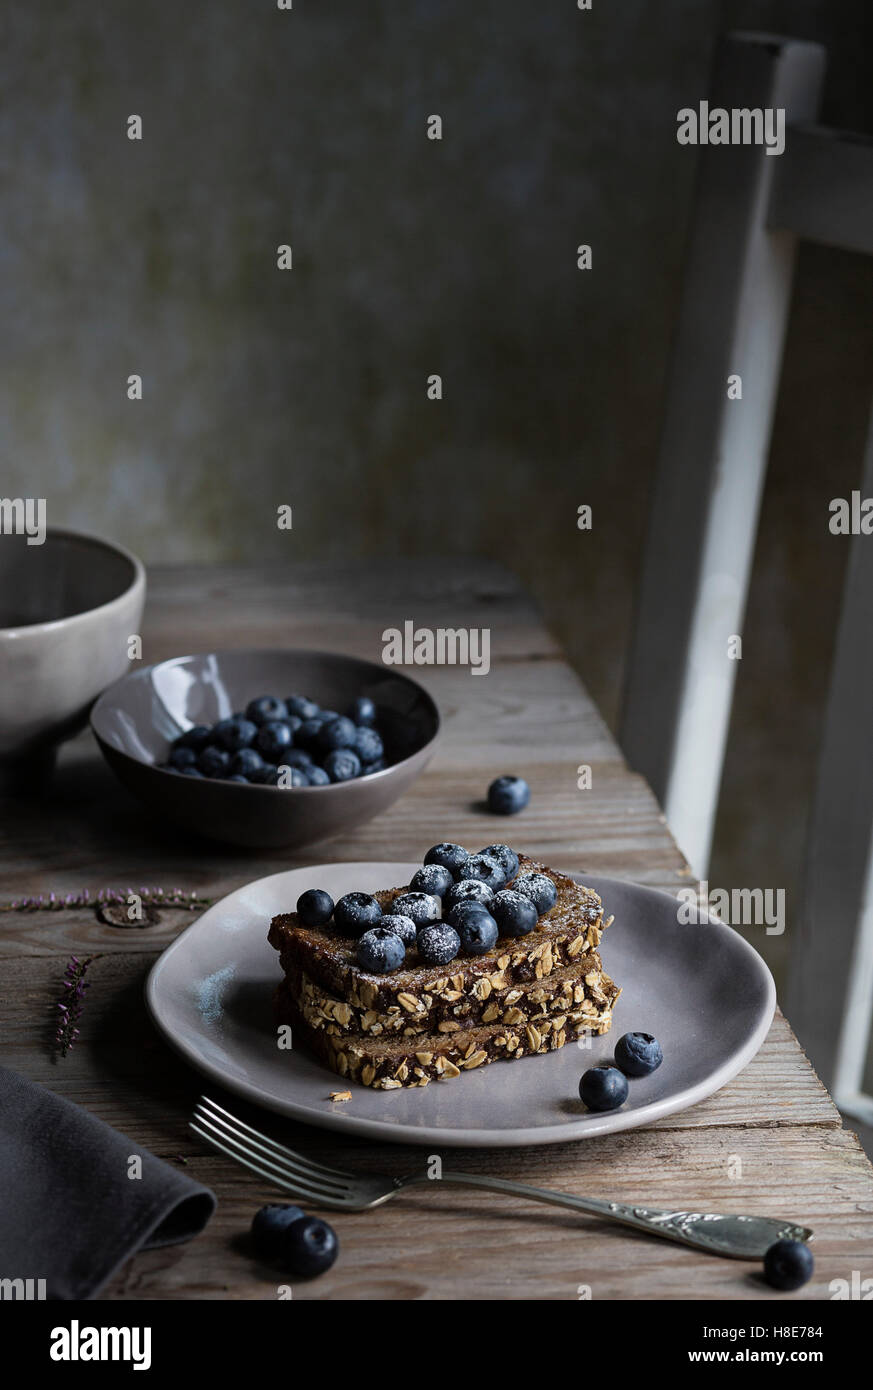 Breakfast with cereal bread and blueberries on wooden table - Stock Image